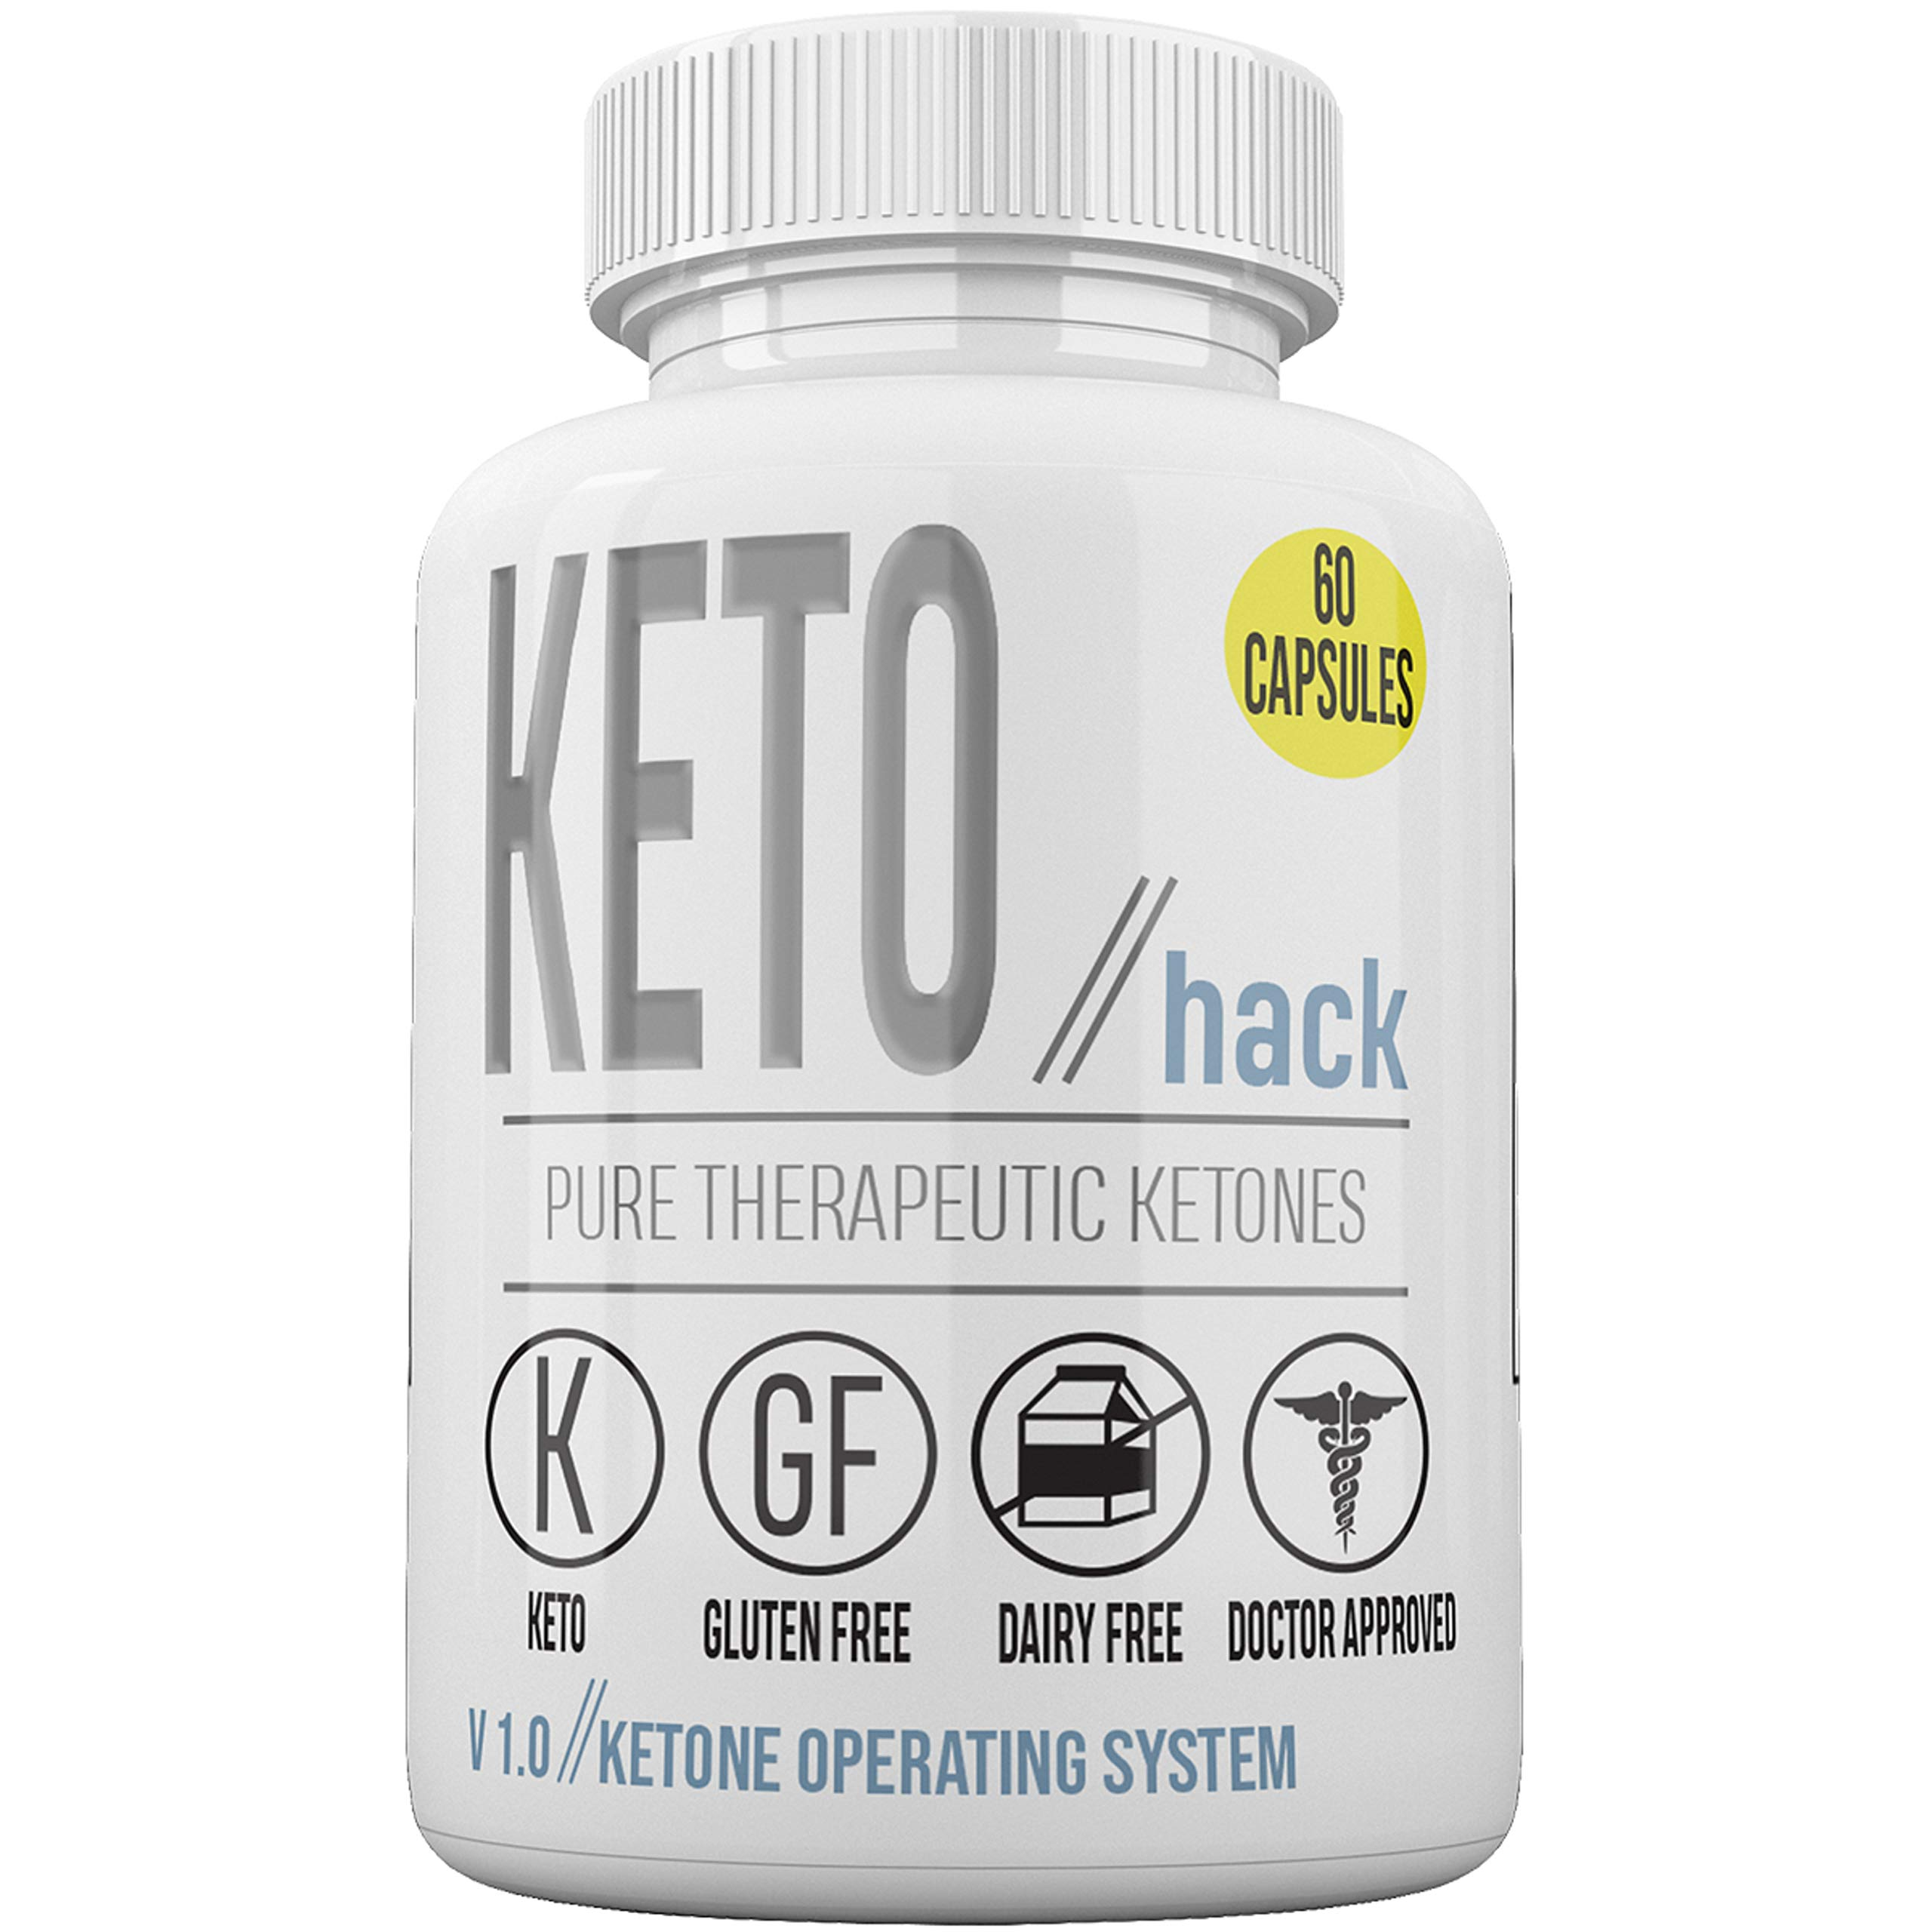 Keto Hack Capsules - Pure Therapeutic Ketones - Ketone Operating System - 30 Dose Supply